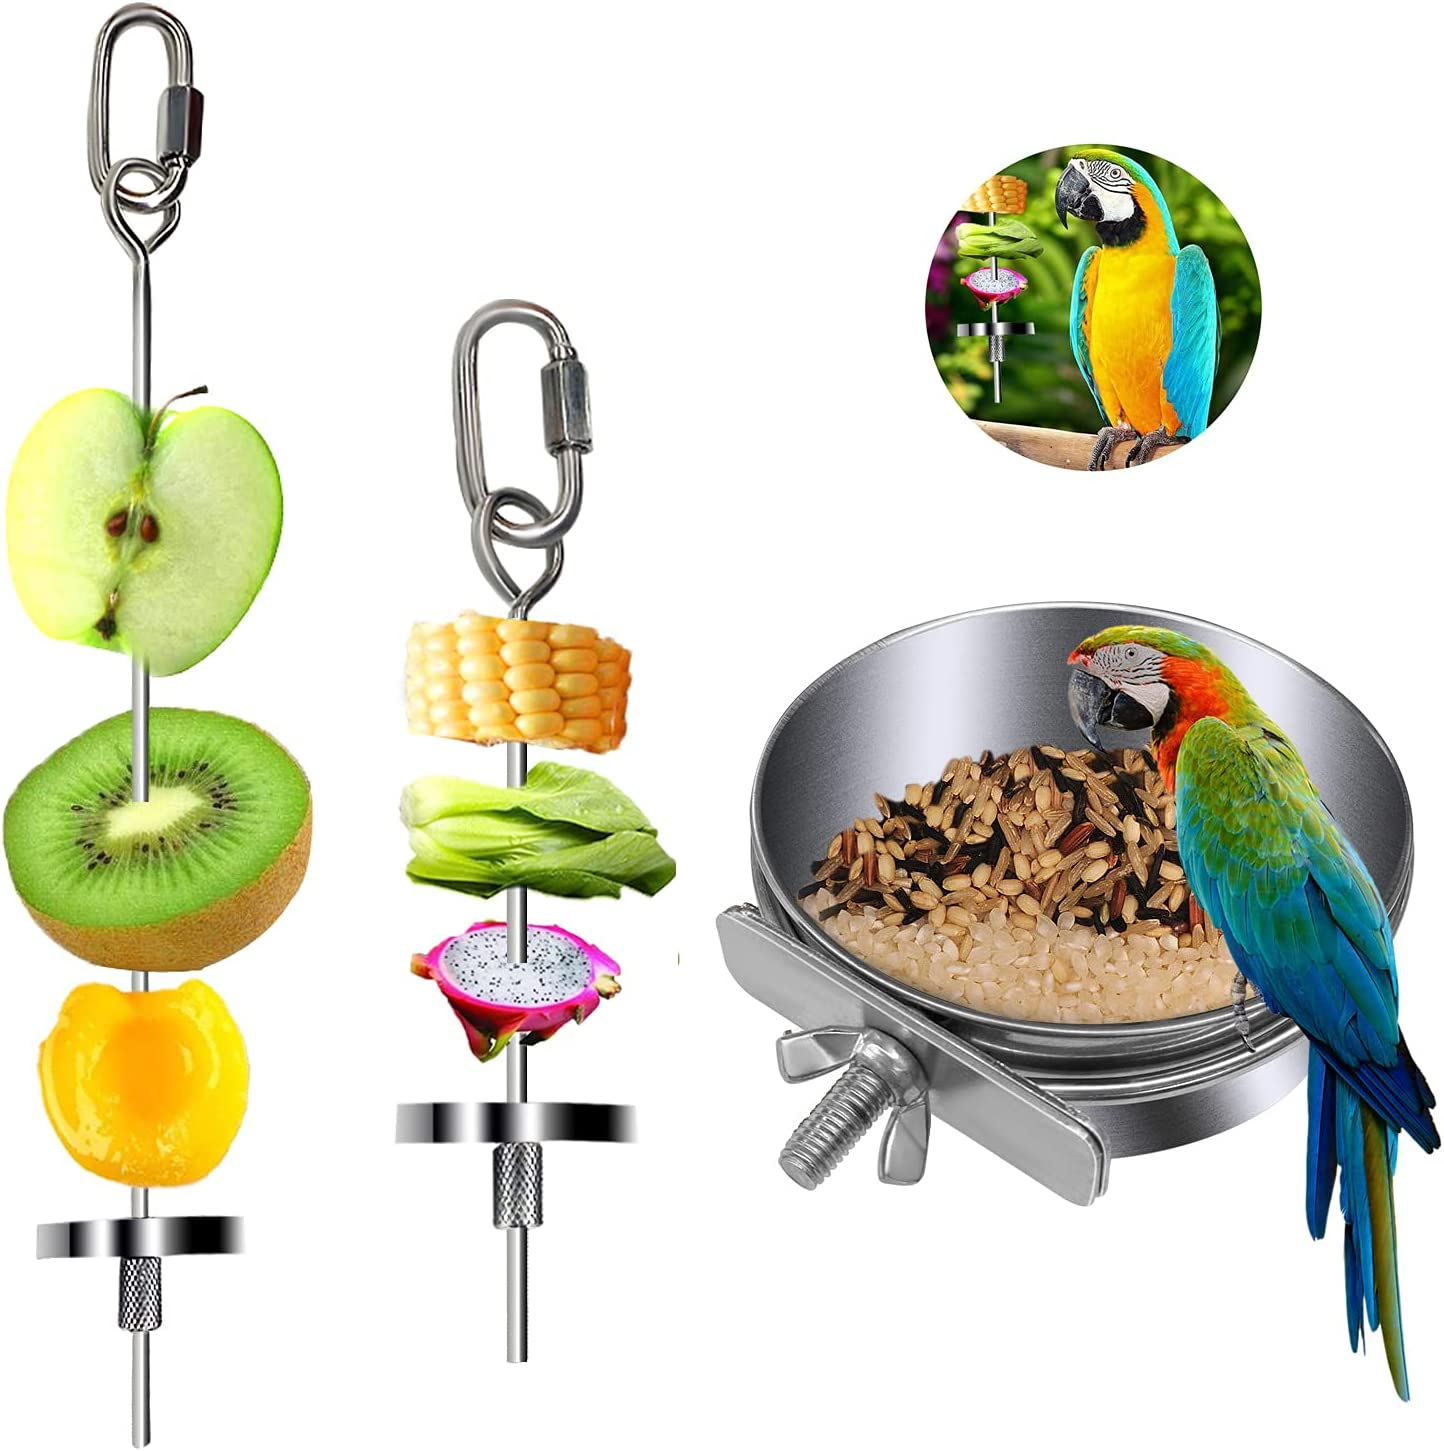 SETHOUS 3 Pack Bird Food Holder, Bird Food Bowl Stainless Steel Parrot Rat Chicken Fruit Vegetable Stick Skewer with The Ring Hanging Food Feeding Treating Skewer Small Animal Feeder Toy Foraging Toy